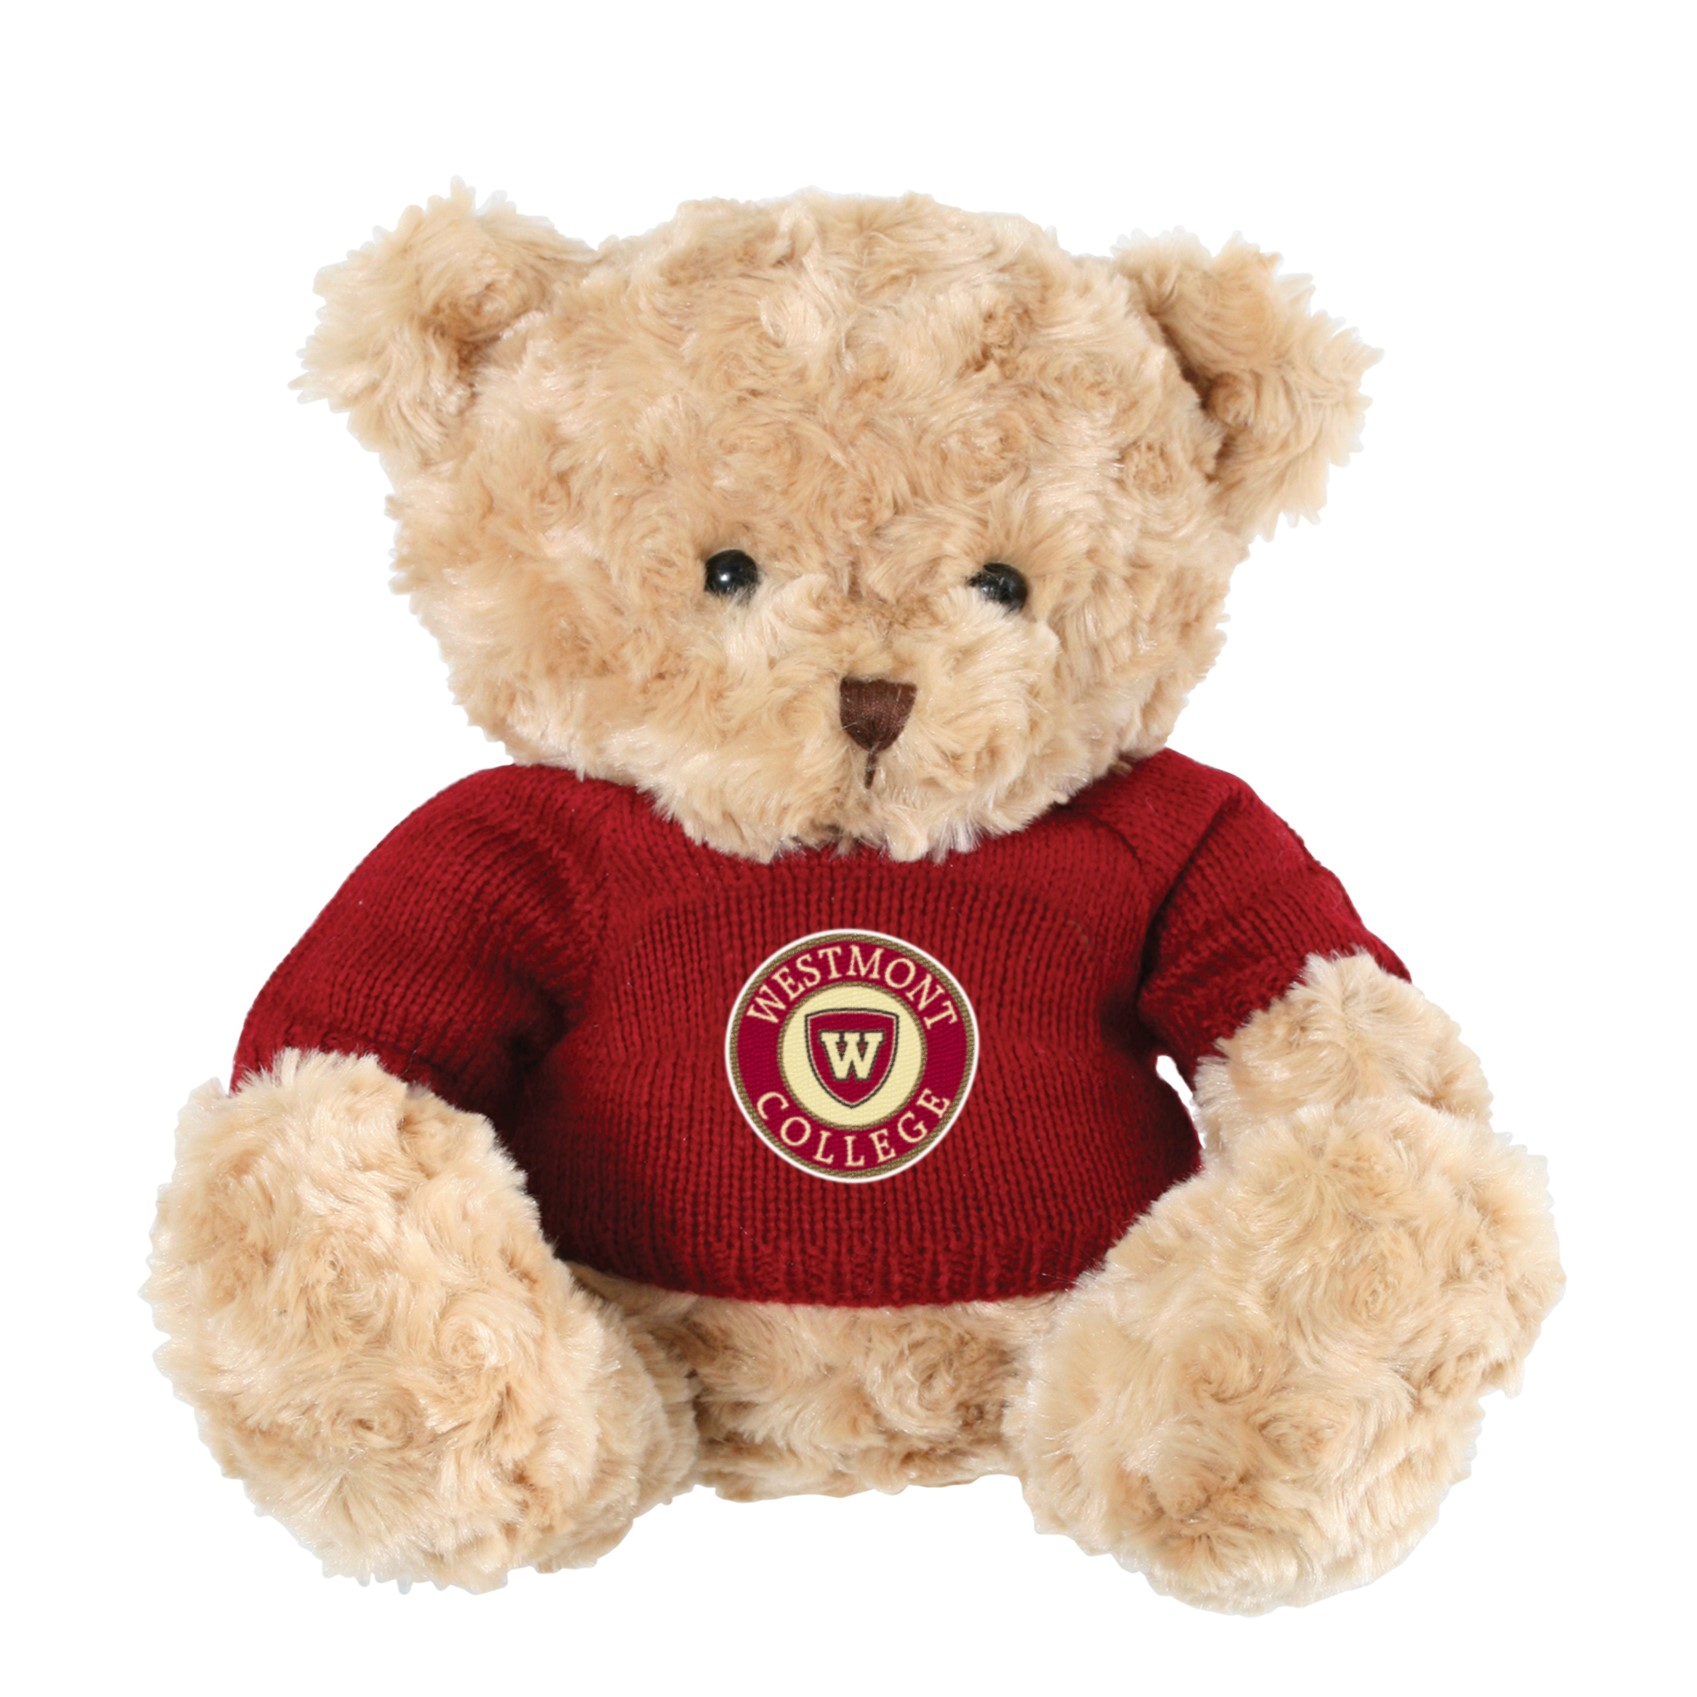 image of: Spirit Bear with Burgundy Sweater and Westmont College Patch